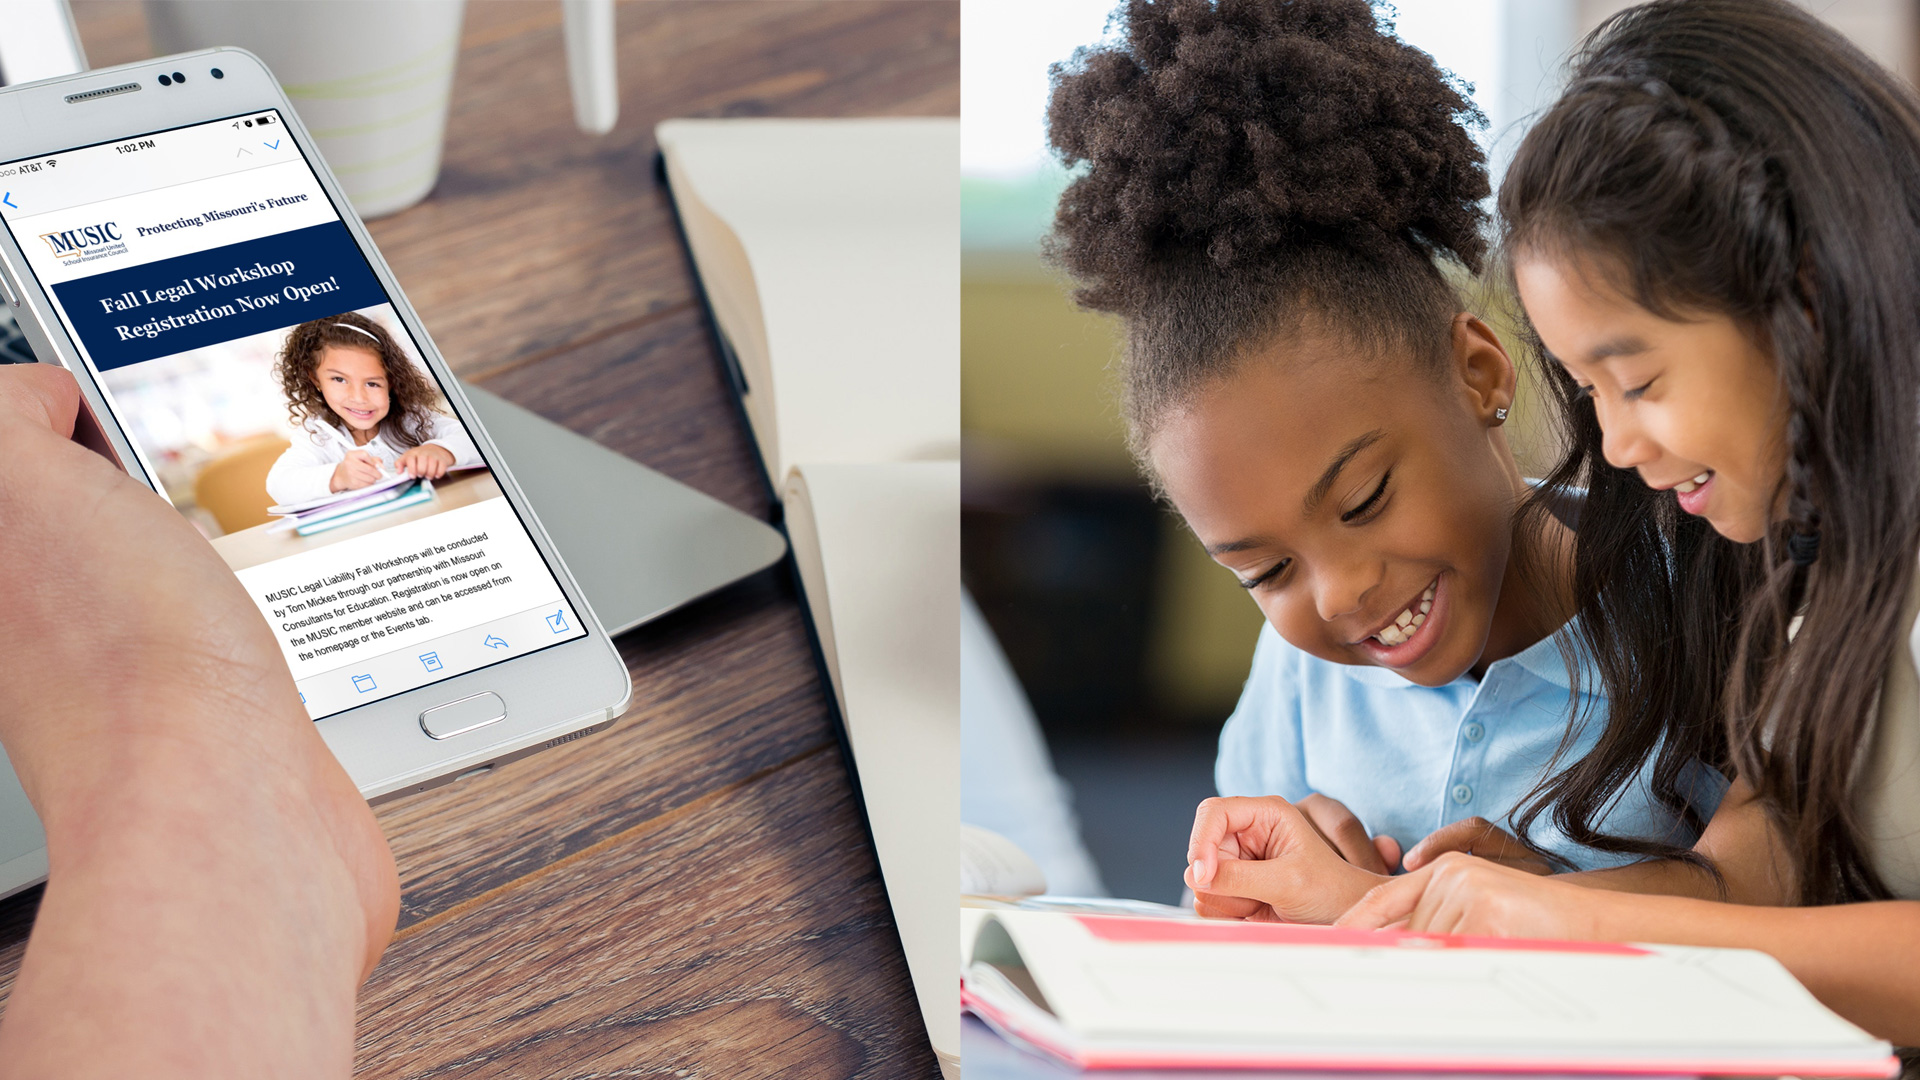 The new responsive website design for the MUSIC site works well on both desktop and mobile. Large images are featured throughout the site, including images that show the diversity of Missouri schools. Here, two young girls work on homework together.